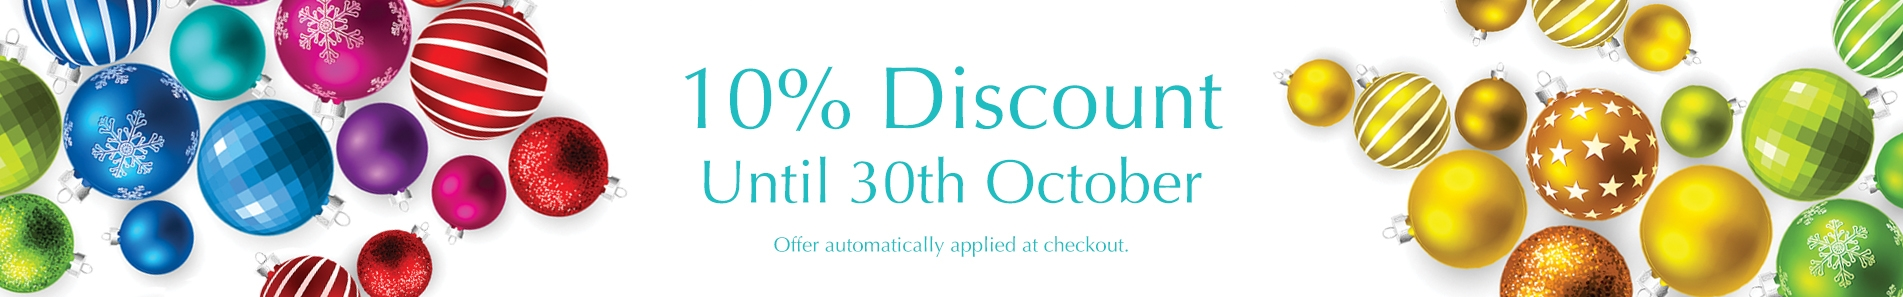 10% discount ends 30th October